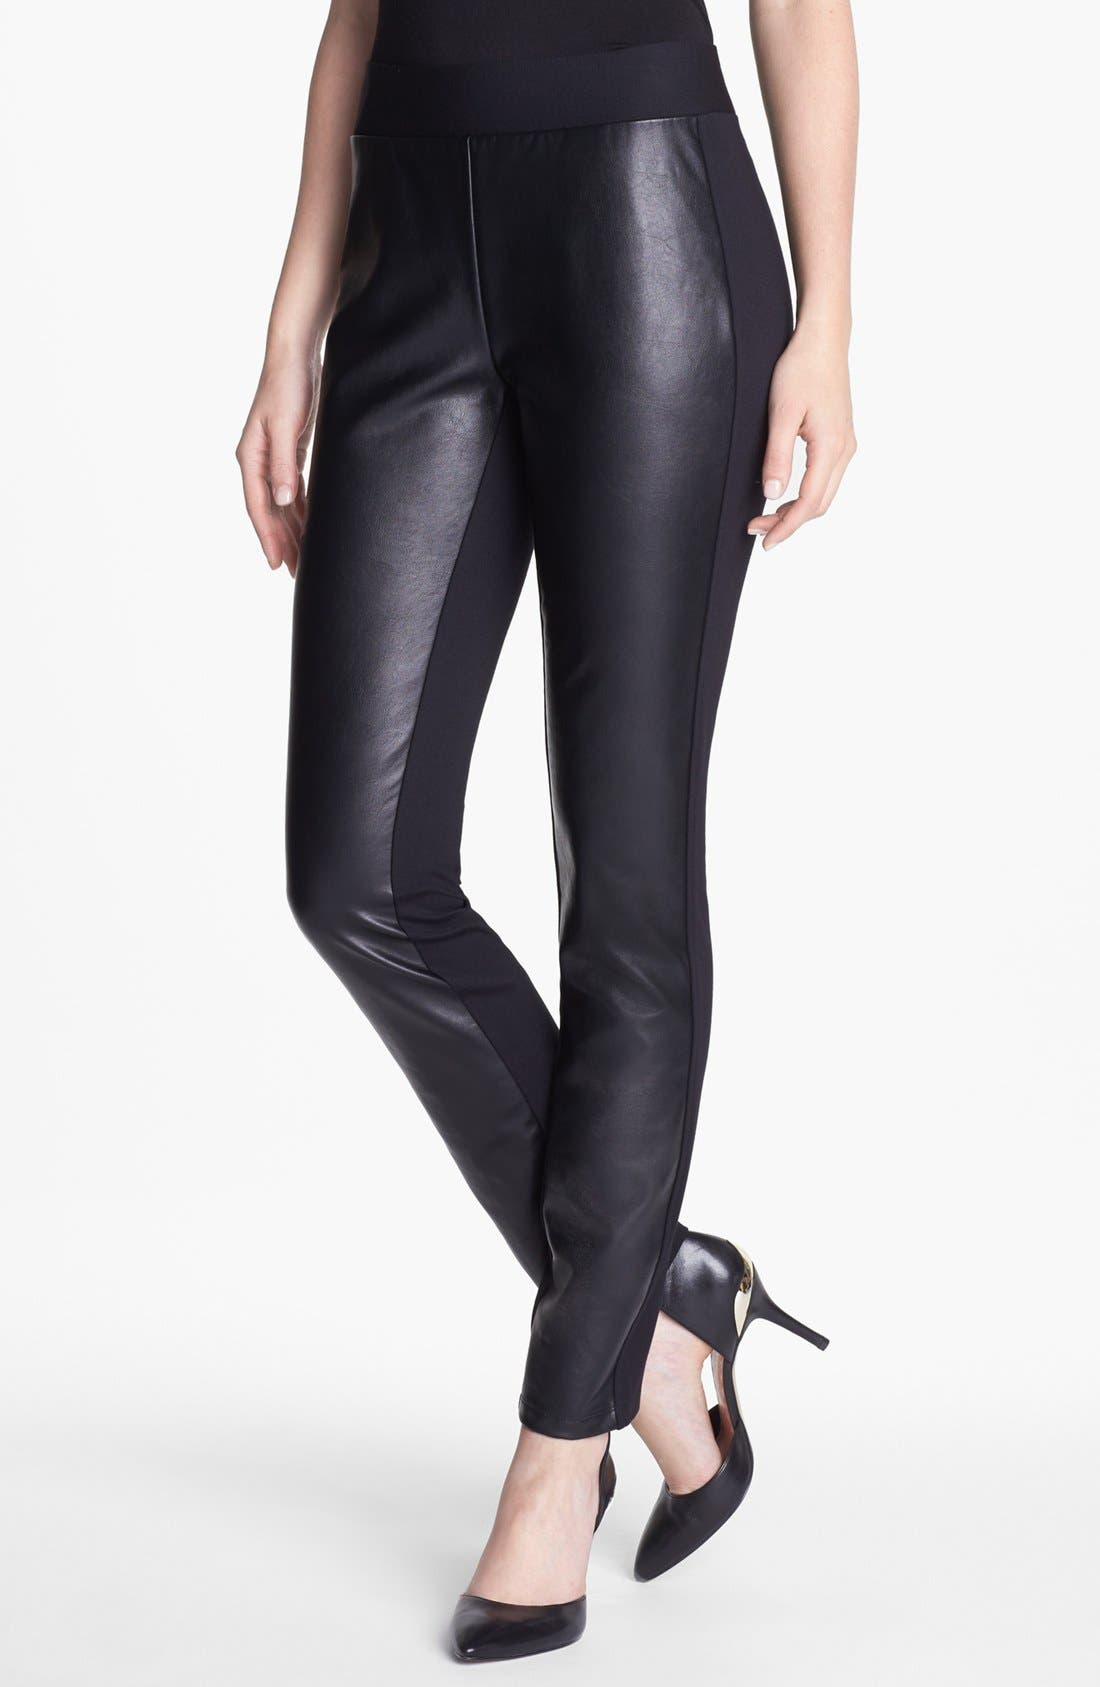 Alternate Image 1 Selected - NYDJ Faux Leather & Stretch Ponte Leggings (Regular & Petite)